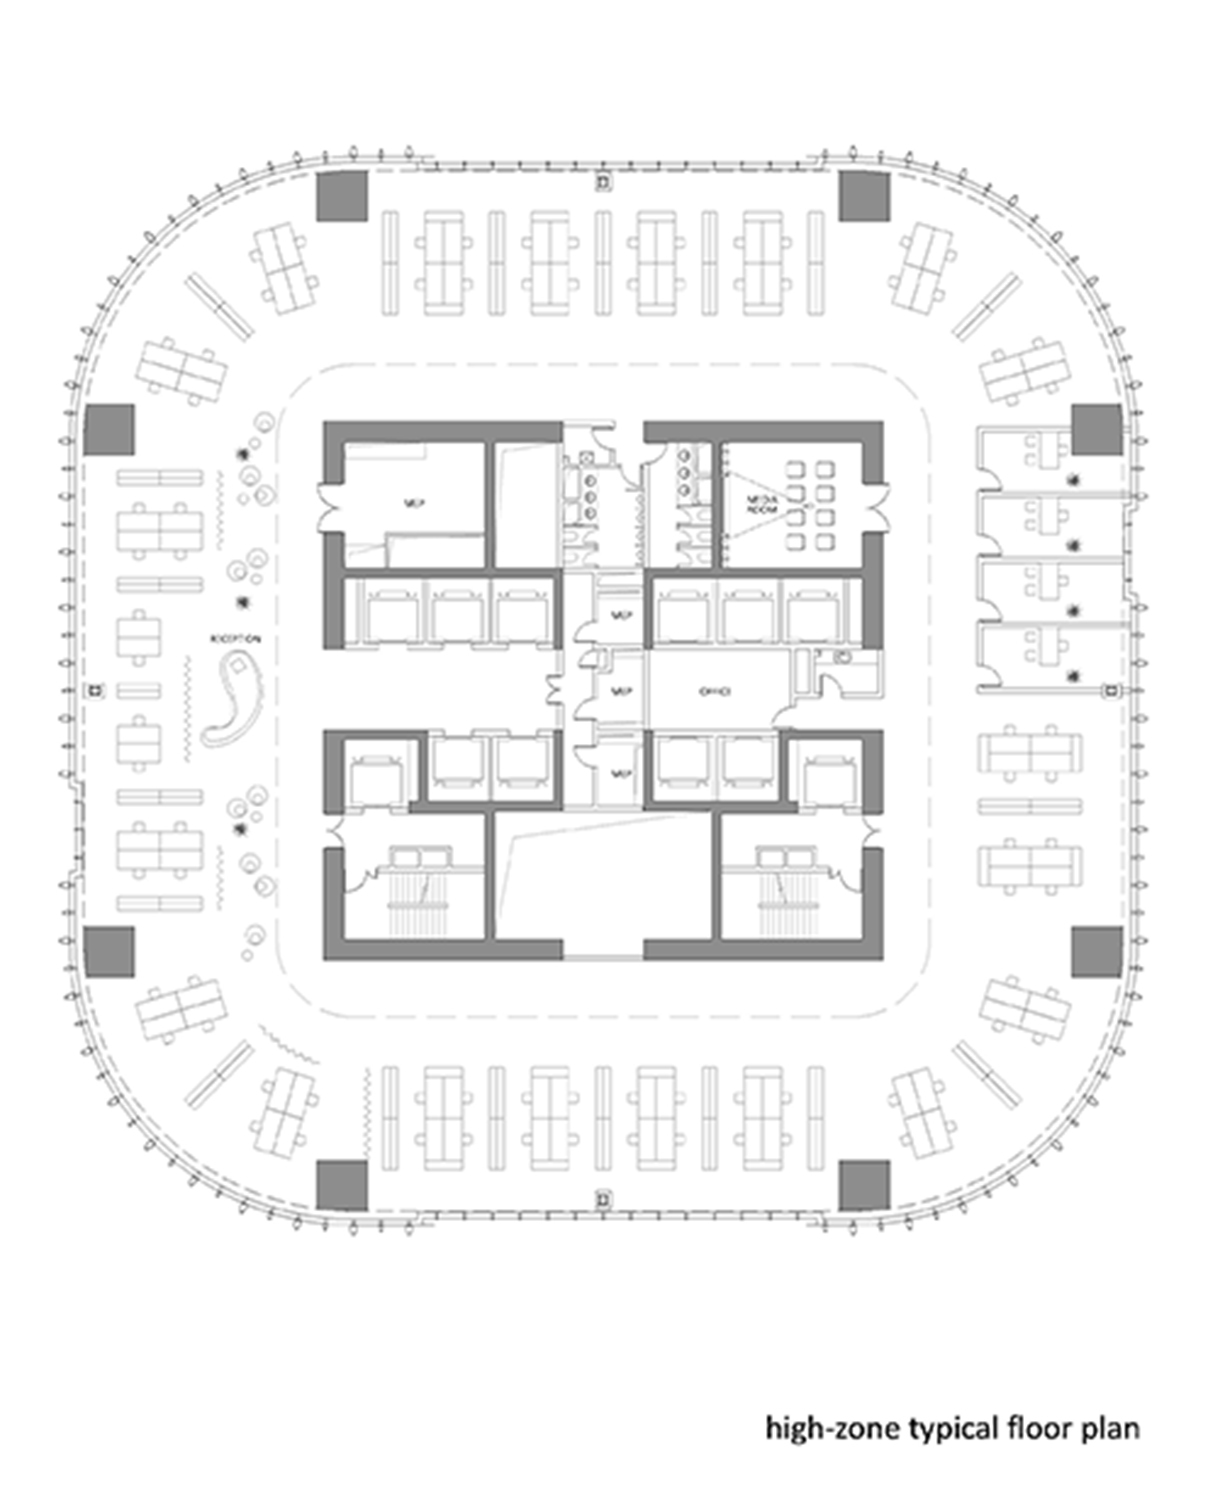 high-zone typical floor plan }